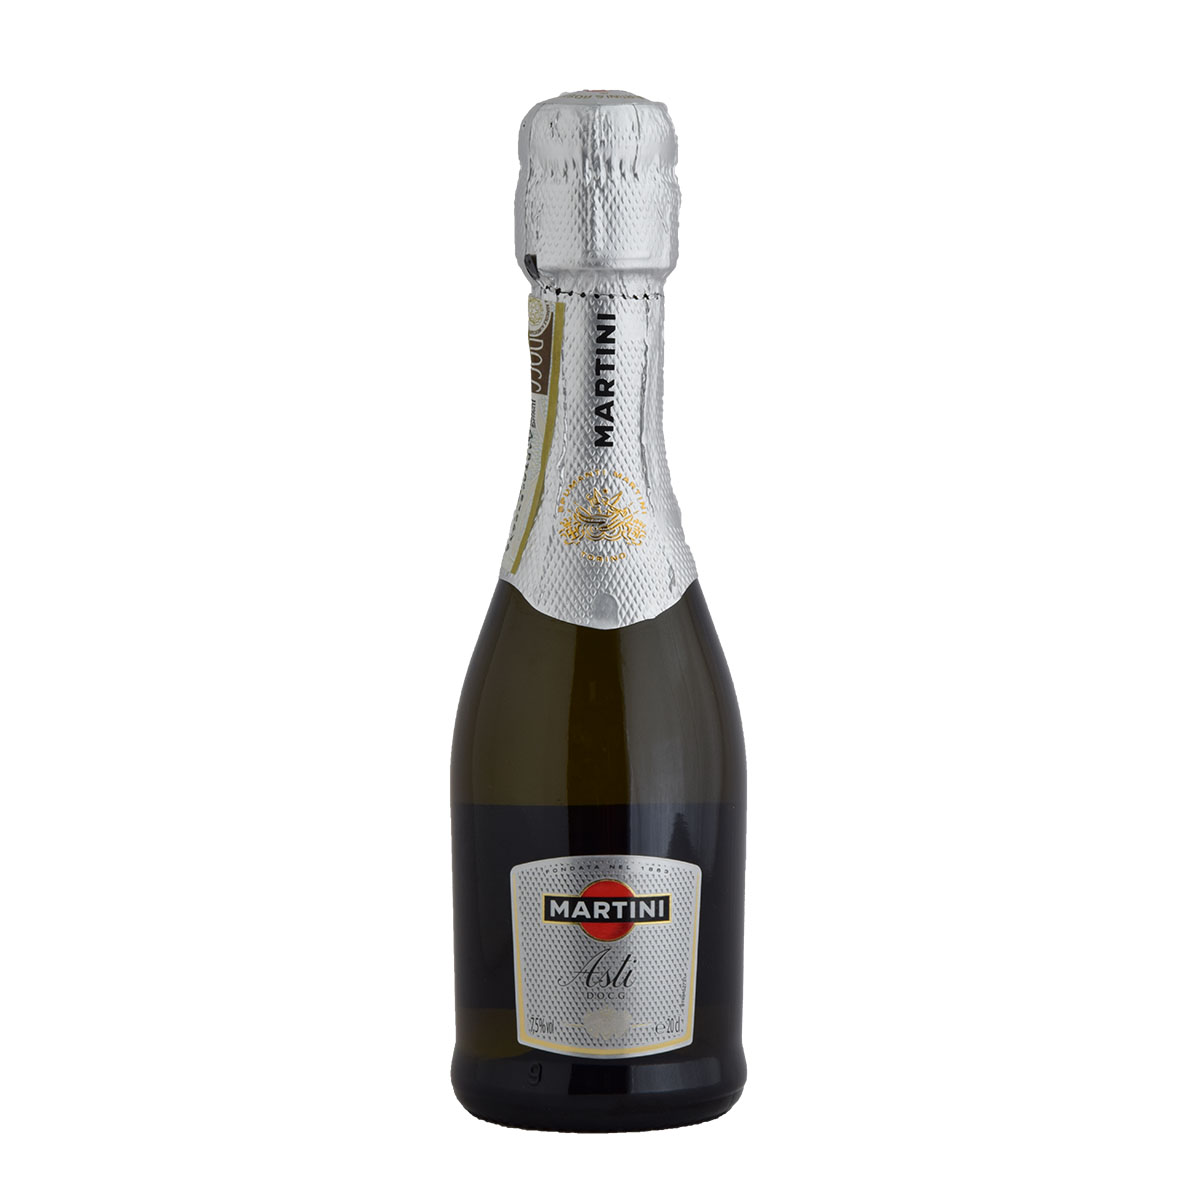 MARTINI ASTI SPUMANTE 200ml